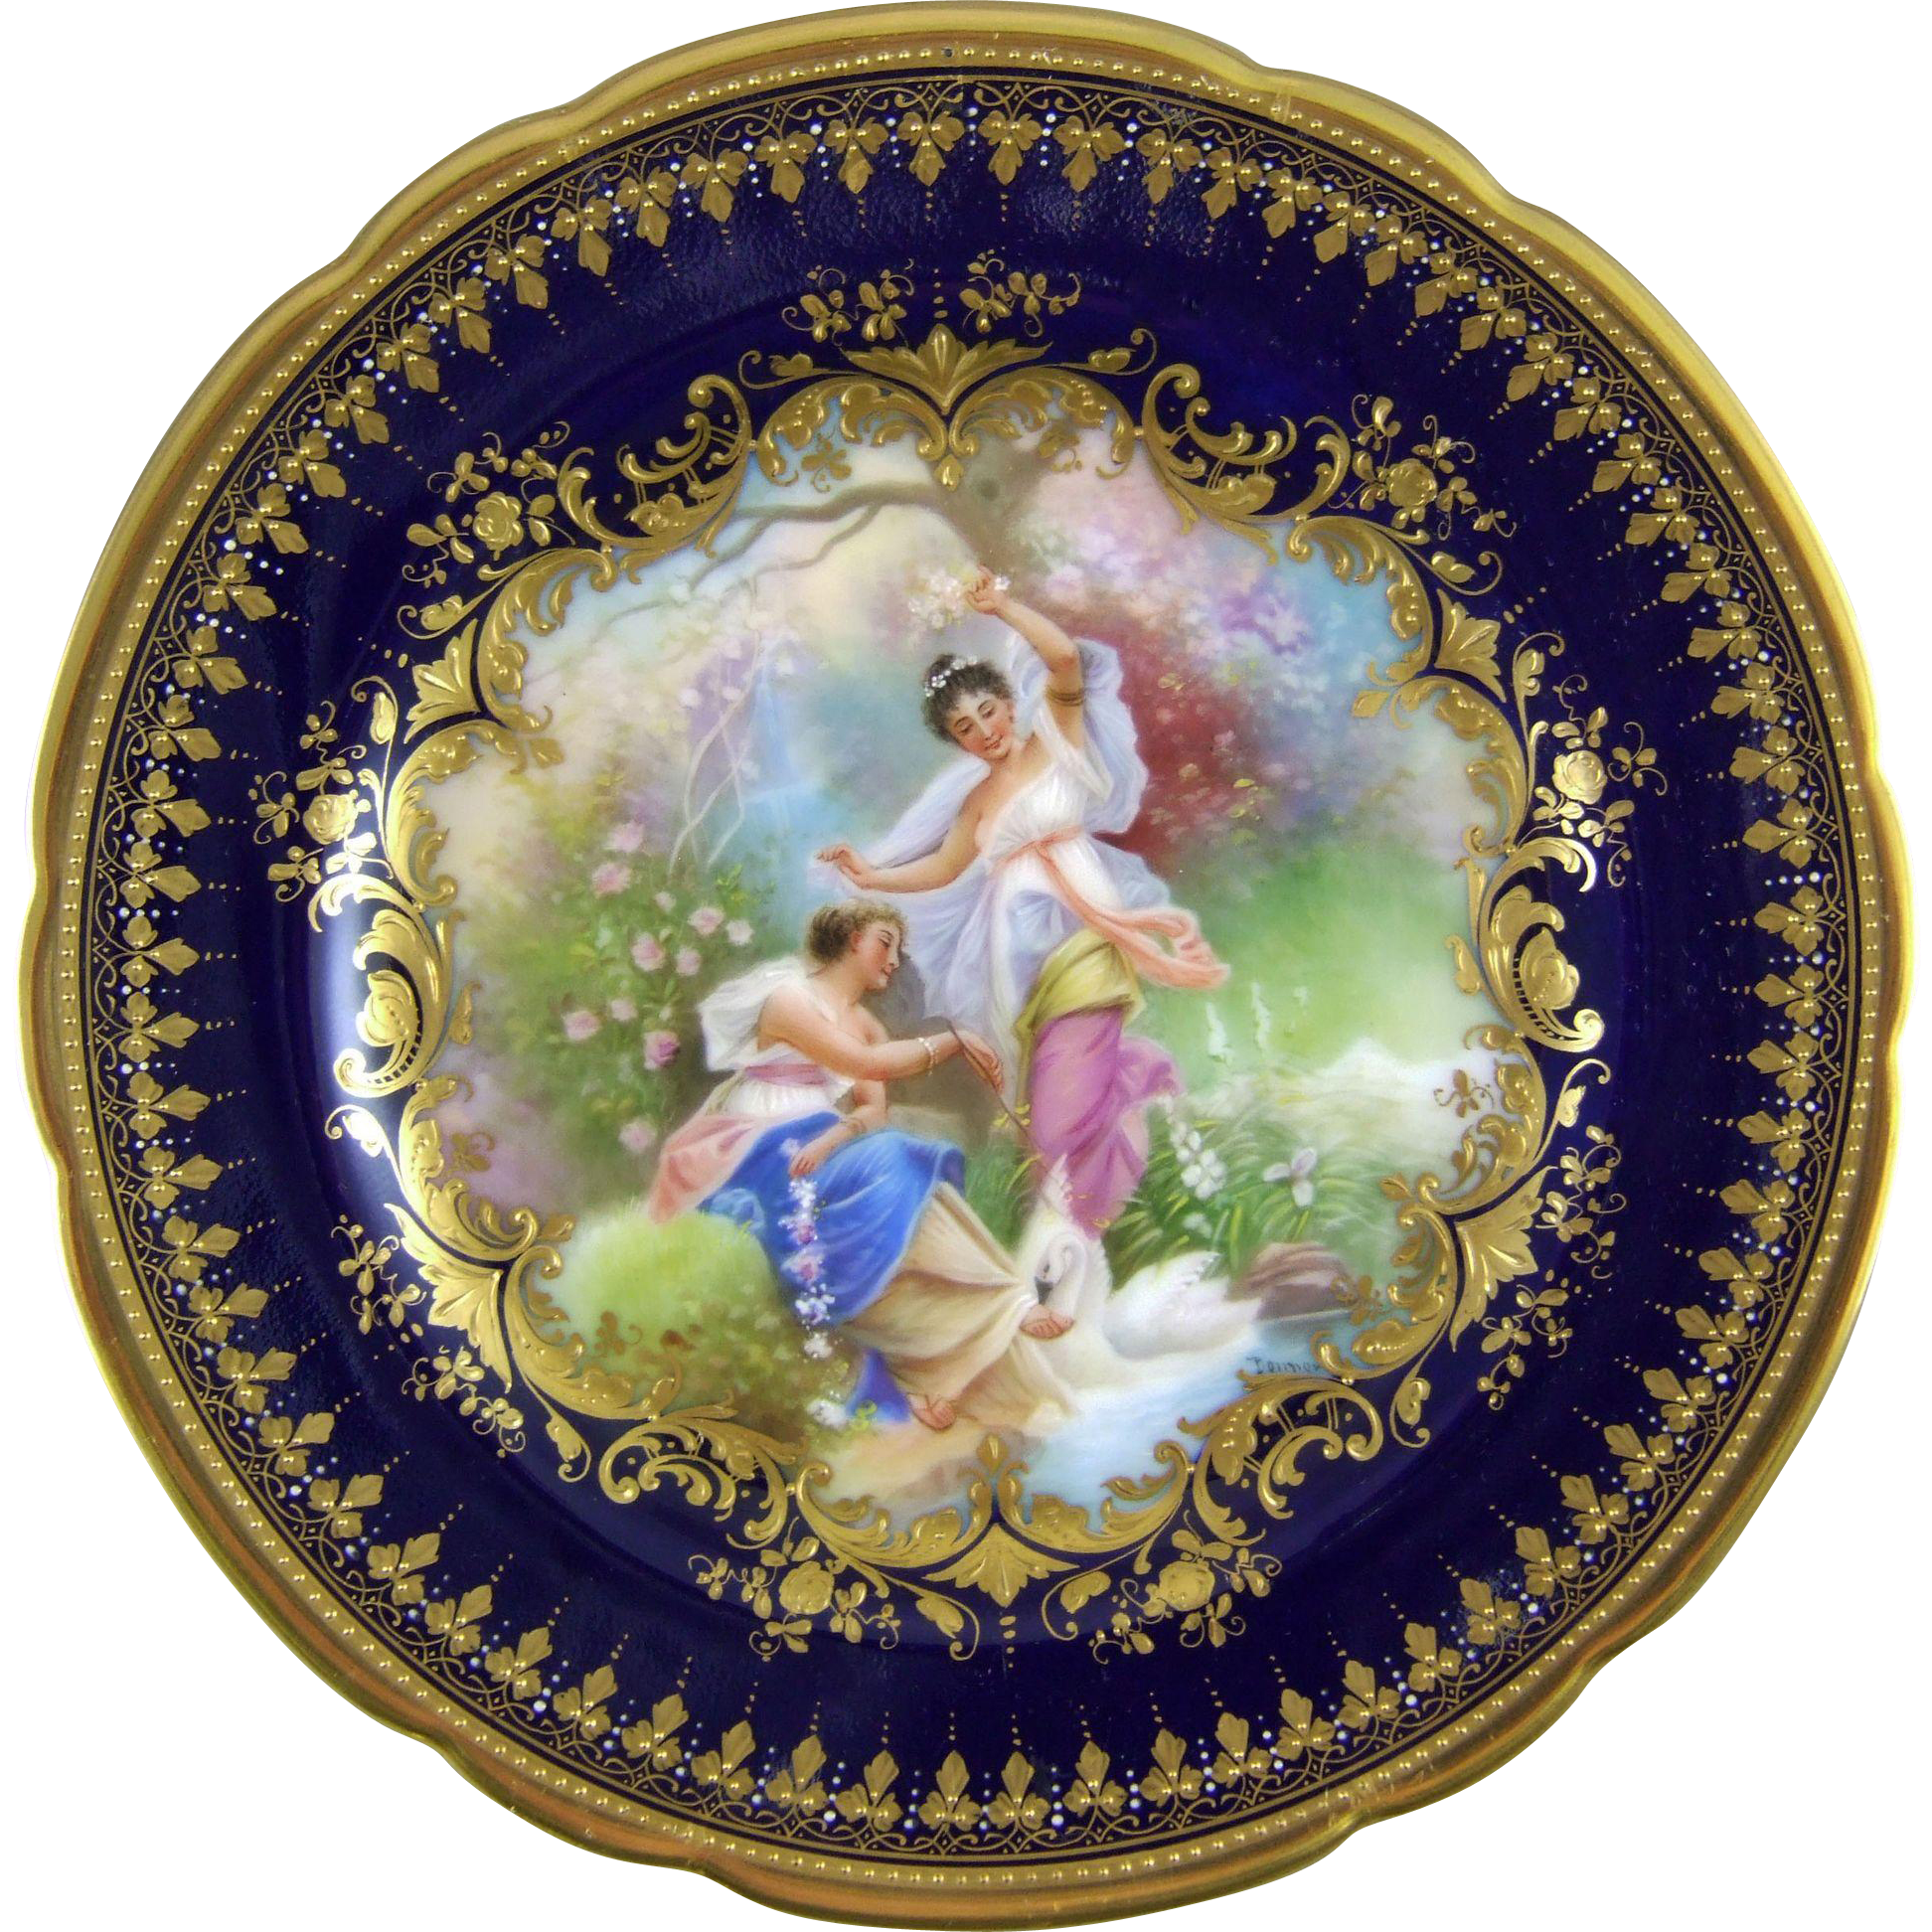 Ambrosius Lamm Dresden Germany Hand Painted Porcelain Cabinet Plate with Hans Zatzka Decoration - Krieg (War)